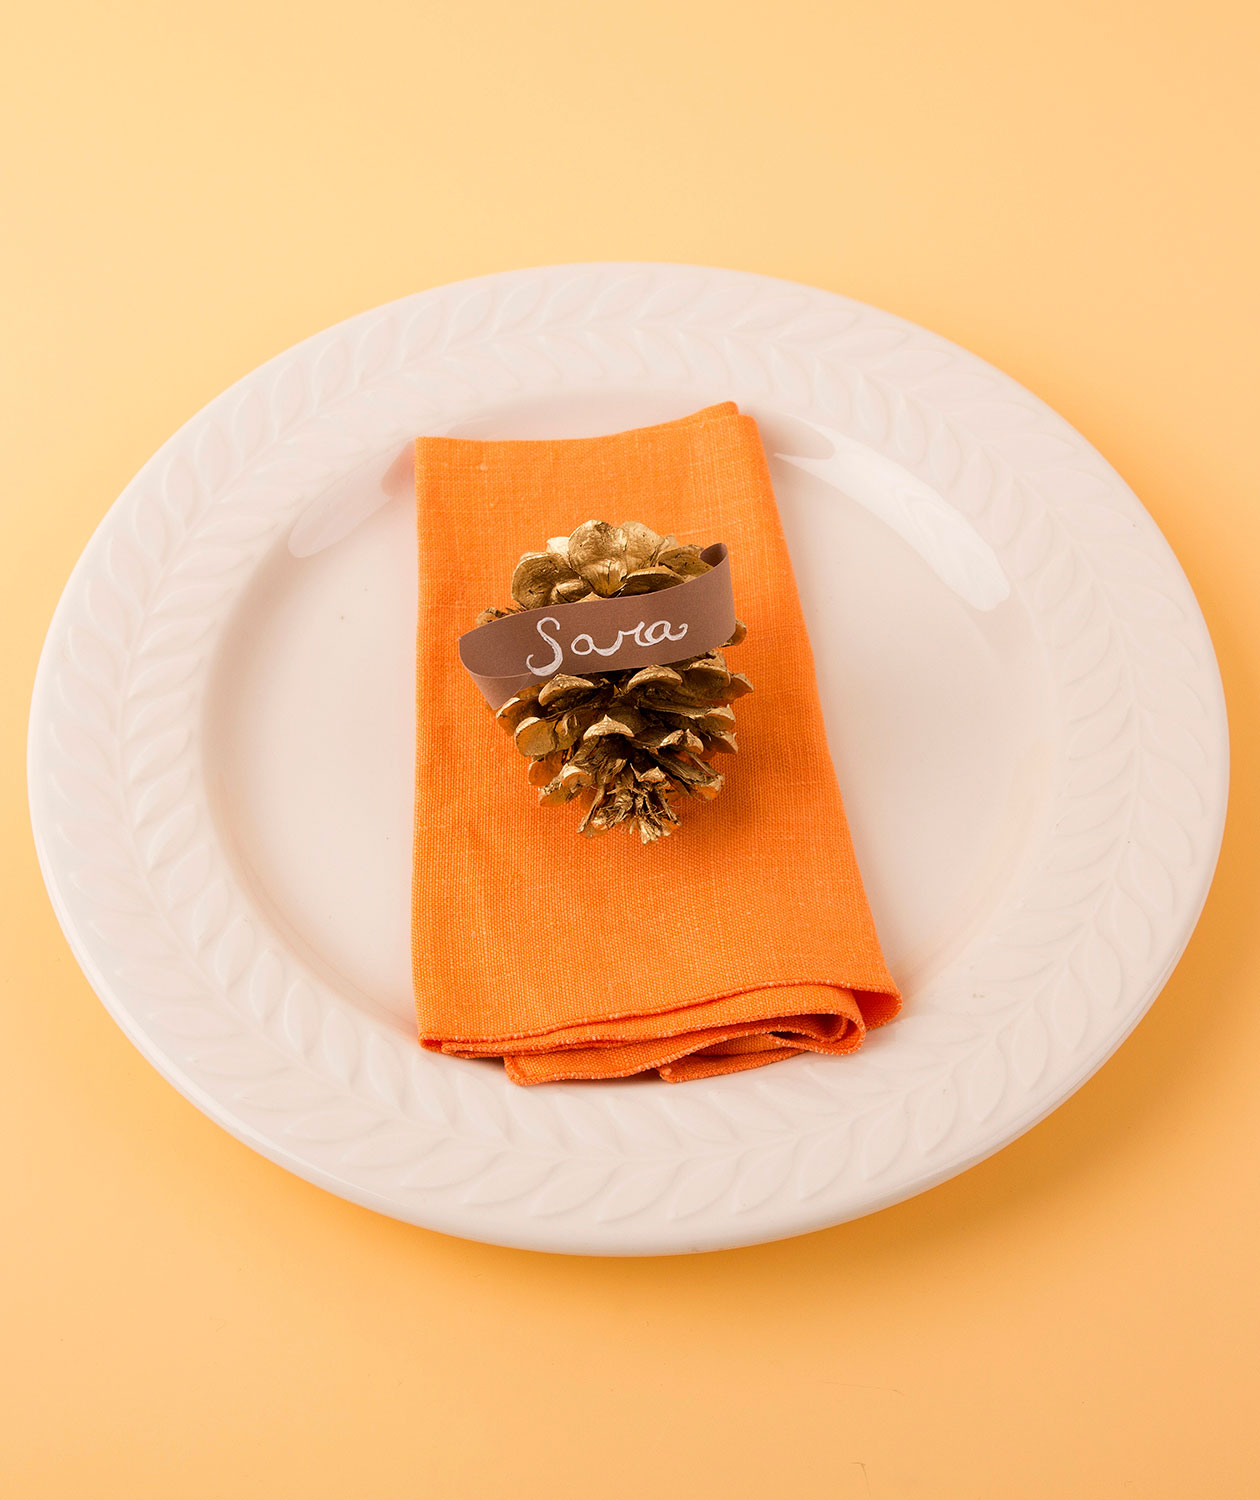 Thanksgiving crafts, ideas - Gold Pinecone Place Card Holder